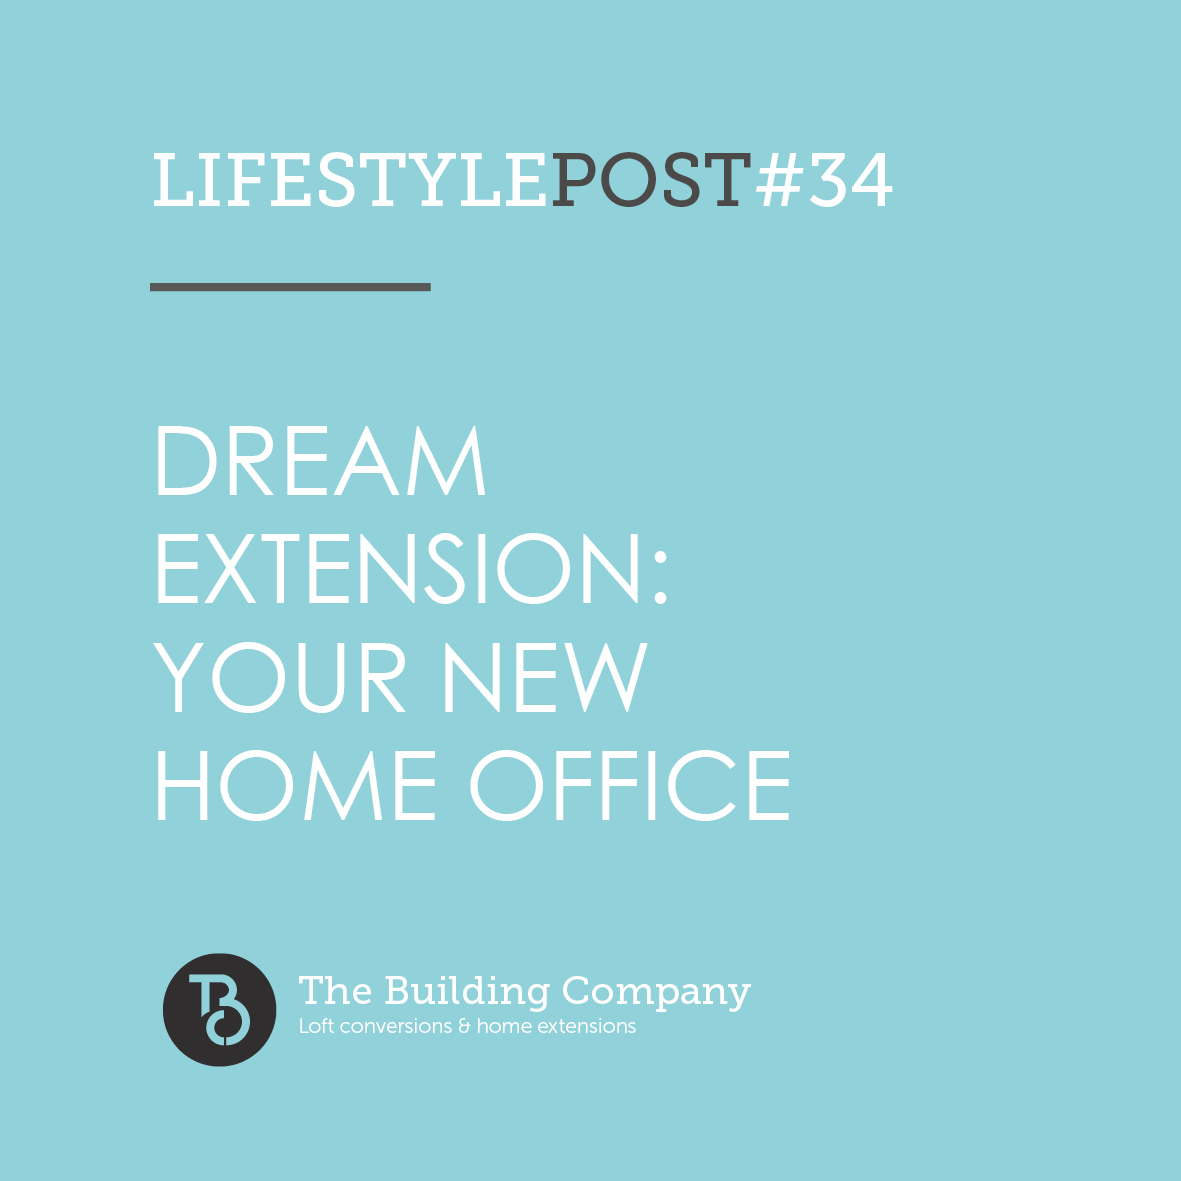 Dream extension: Your new home office in Enfield, Herts and North London